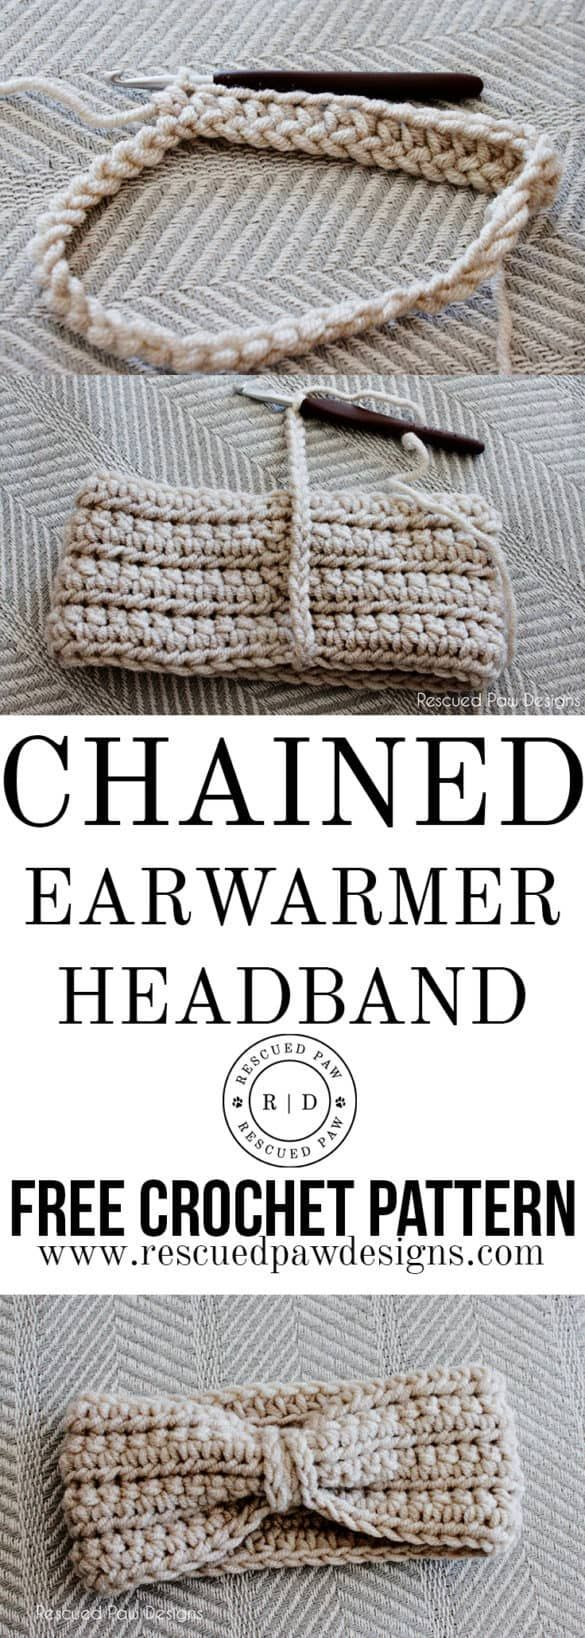 Super Easy Crochet Ear Warmer Pattern | Crochet | Pinterest